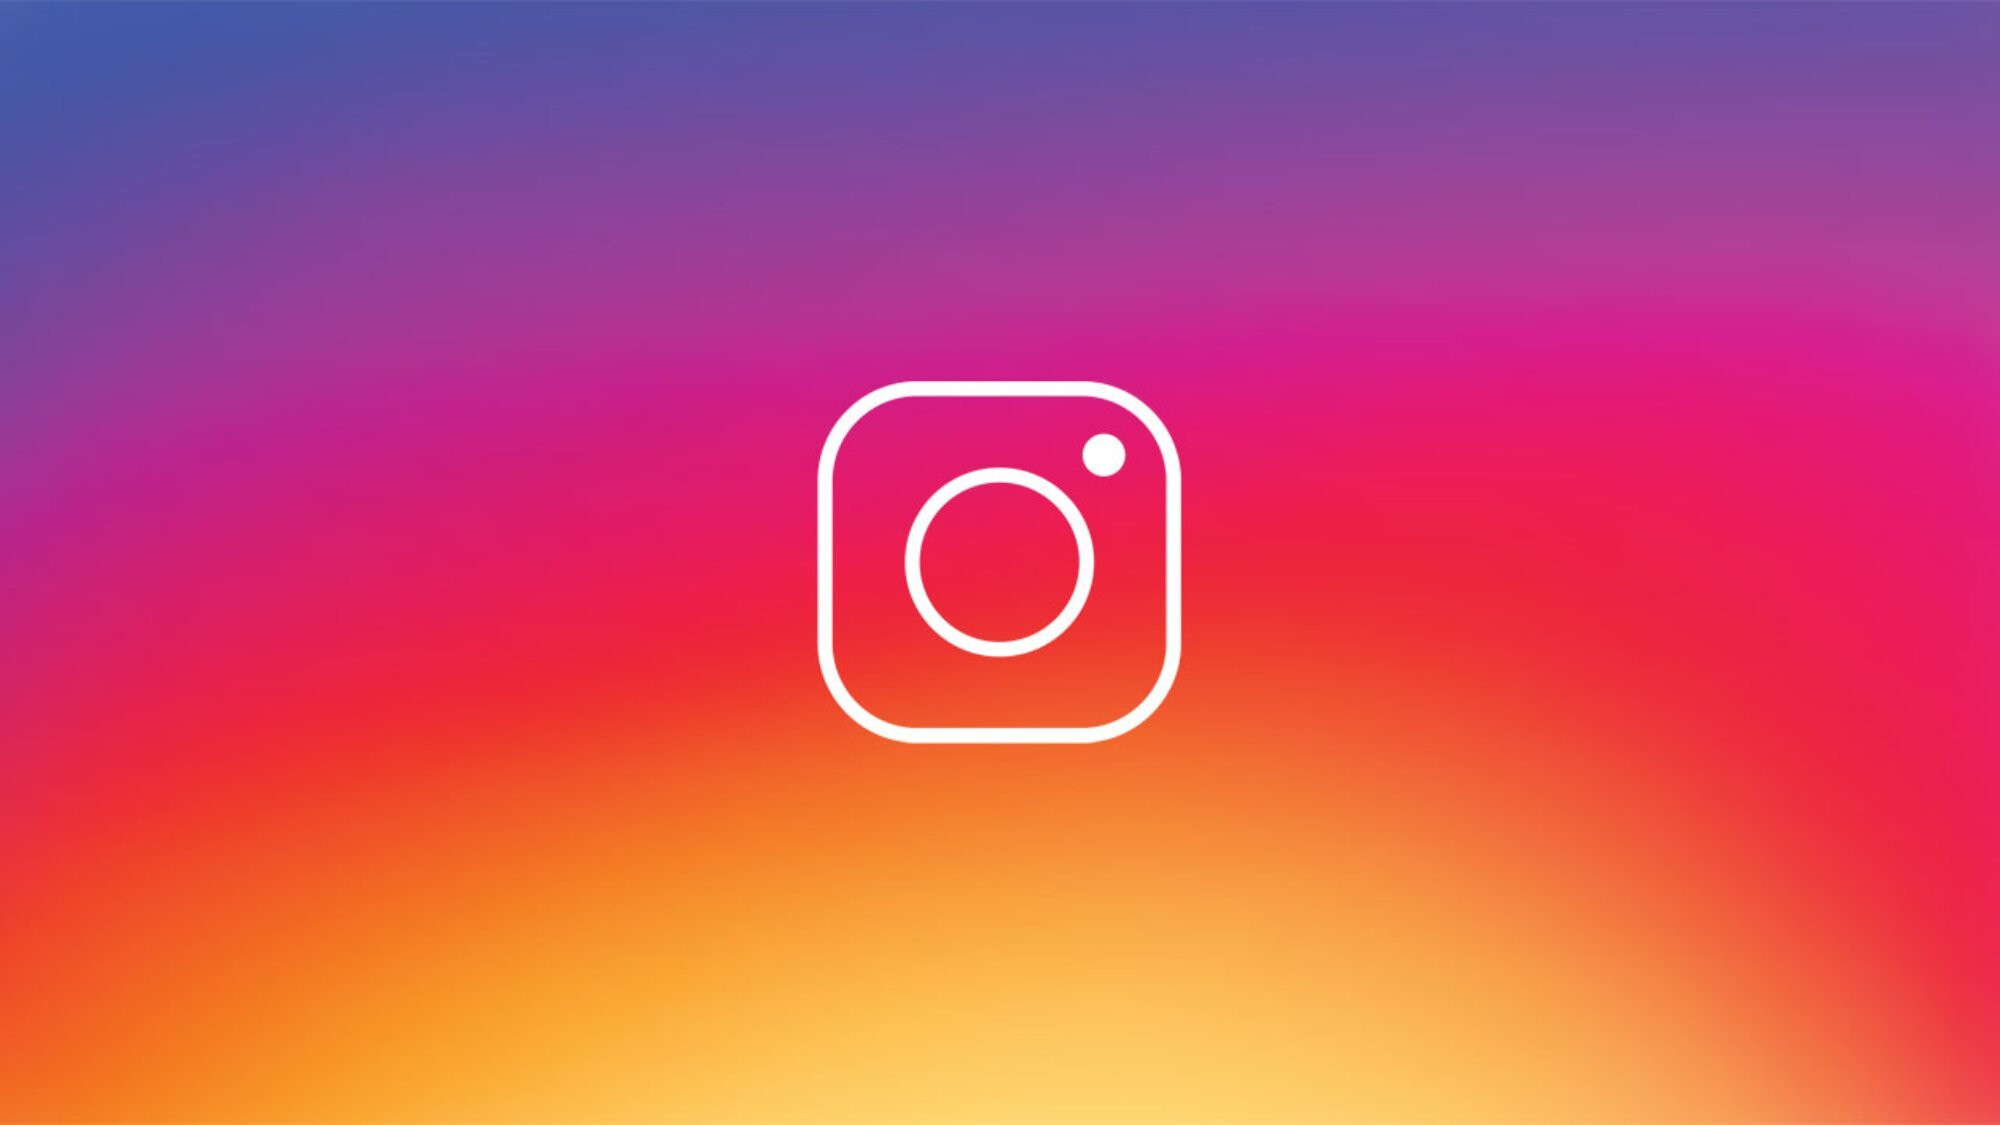 Instagram Makes Serious Money Moves With New Payment Feature